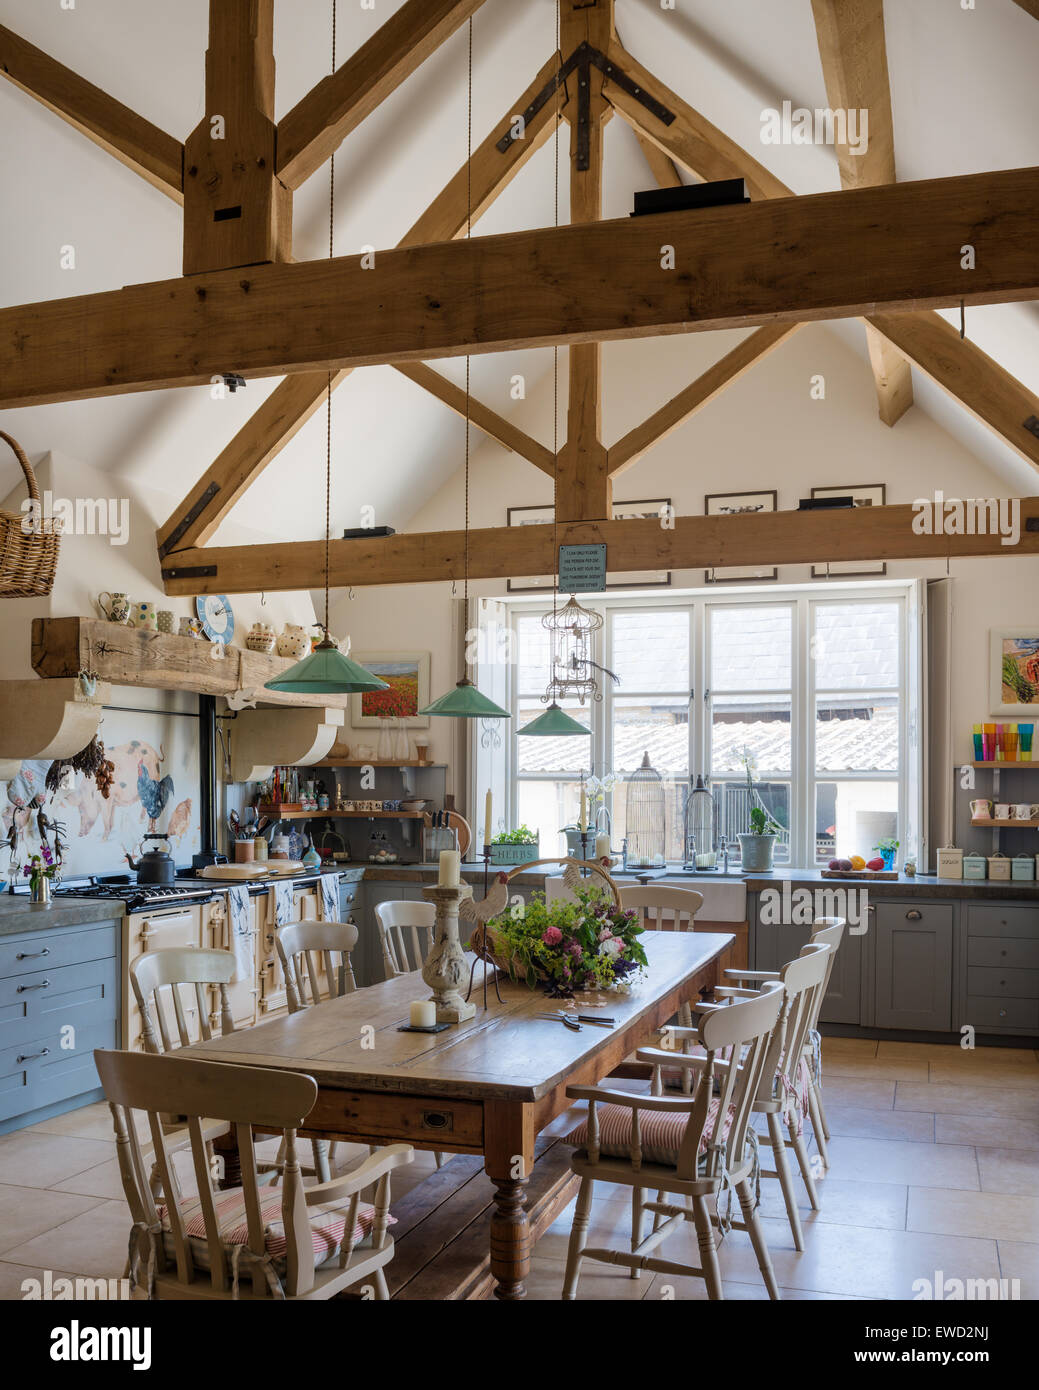 Attrayant Vintage Farmhouse Table In Rustic Kitchen With Green Pendant Lights From  Holloways Of Ludlow, Aga, And Beamed Ceiling